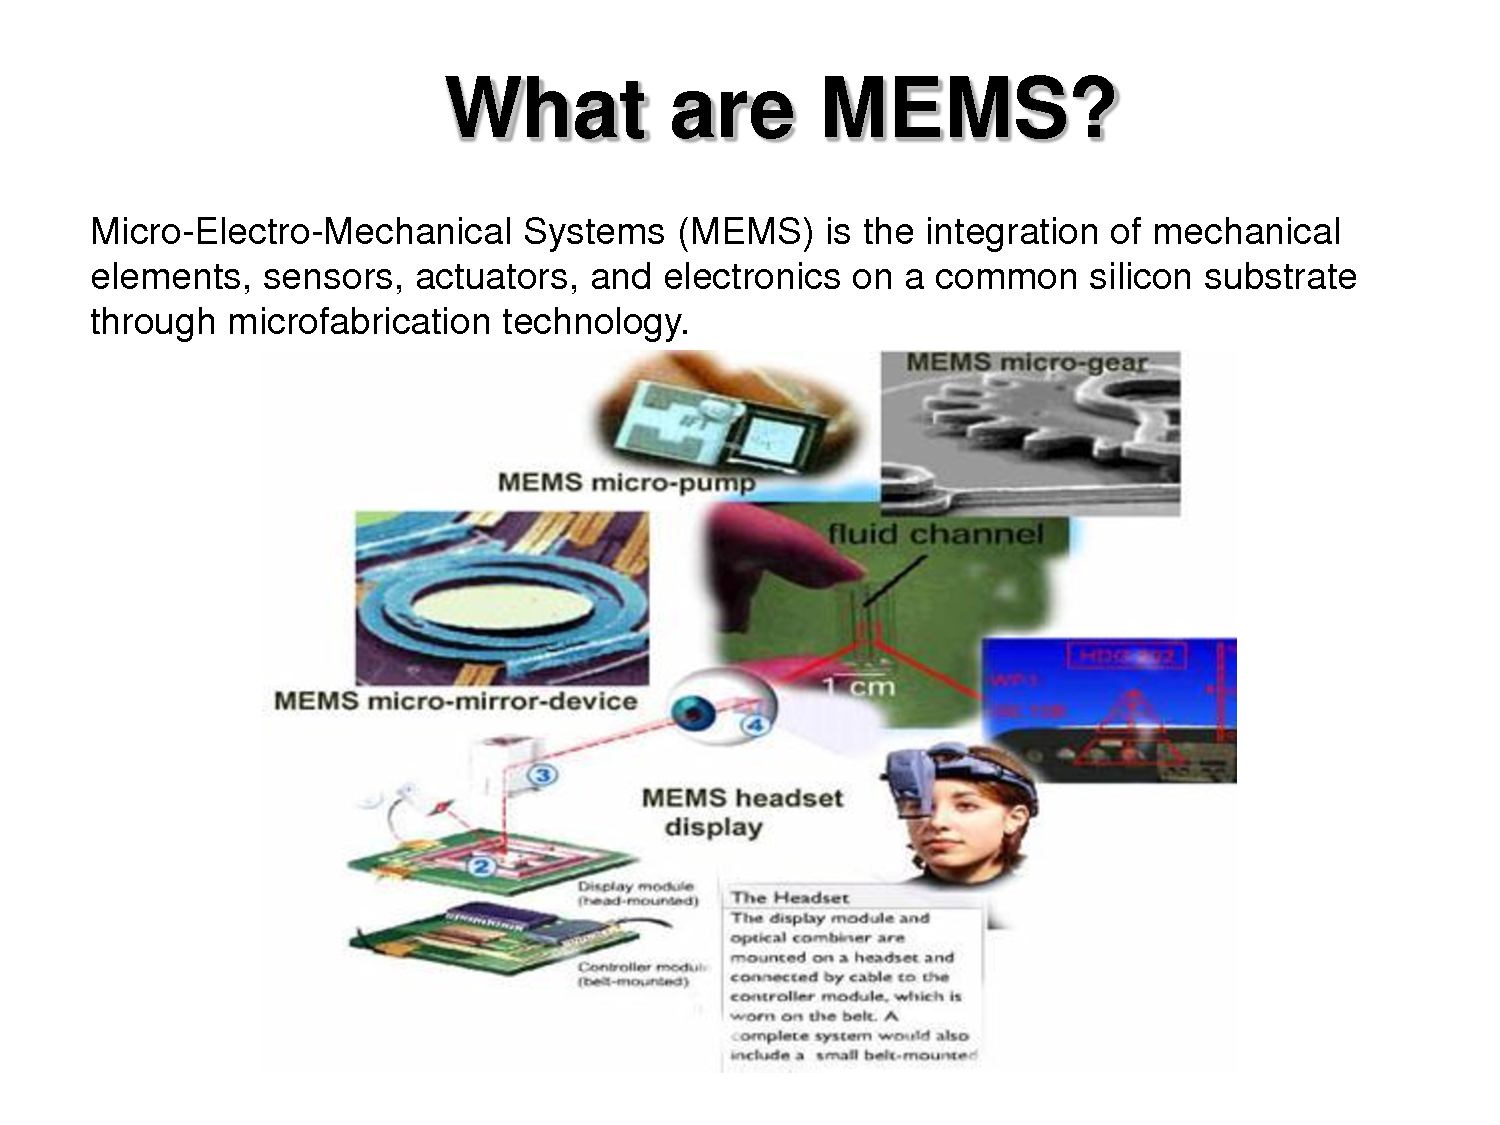 MEMs Image source: shopage.fr